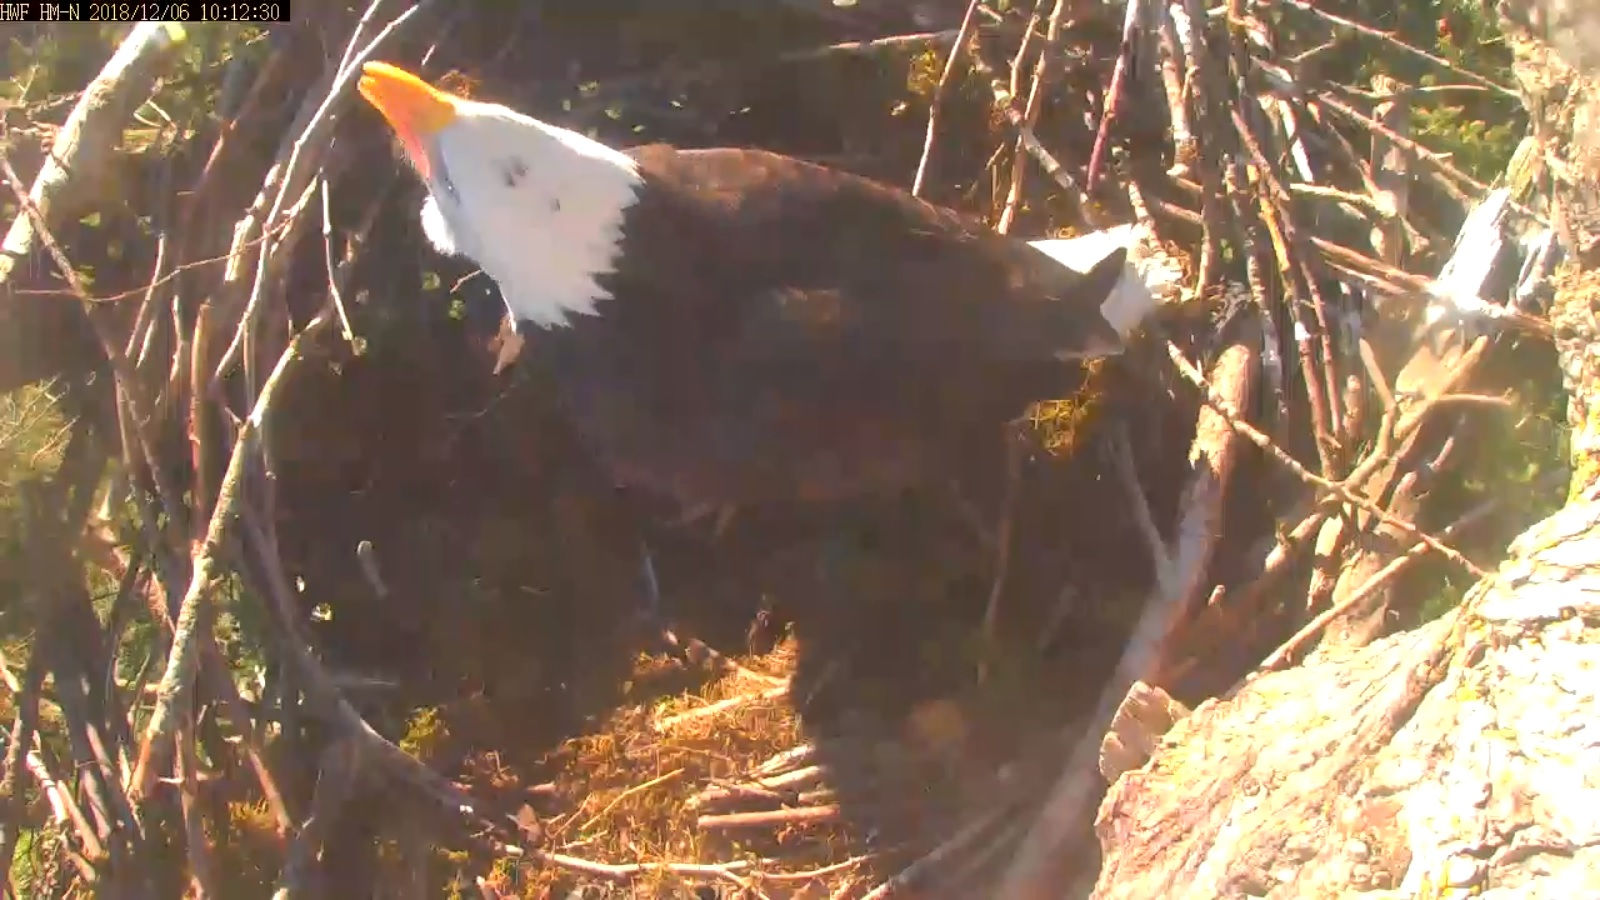 hm lady in nest north cam vocalizing 10 12 .jpg